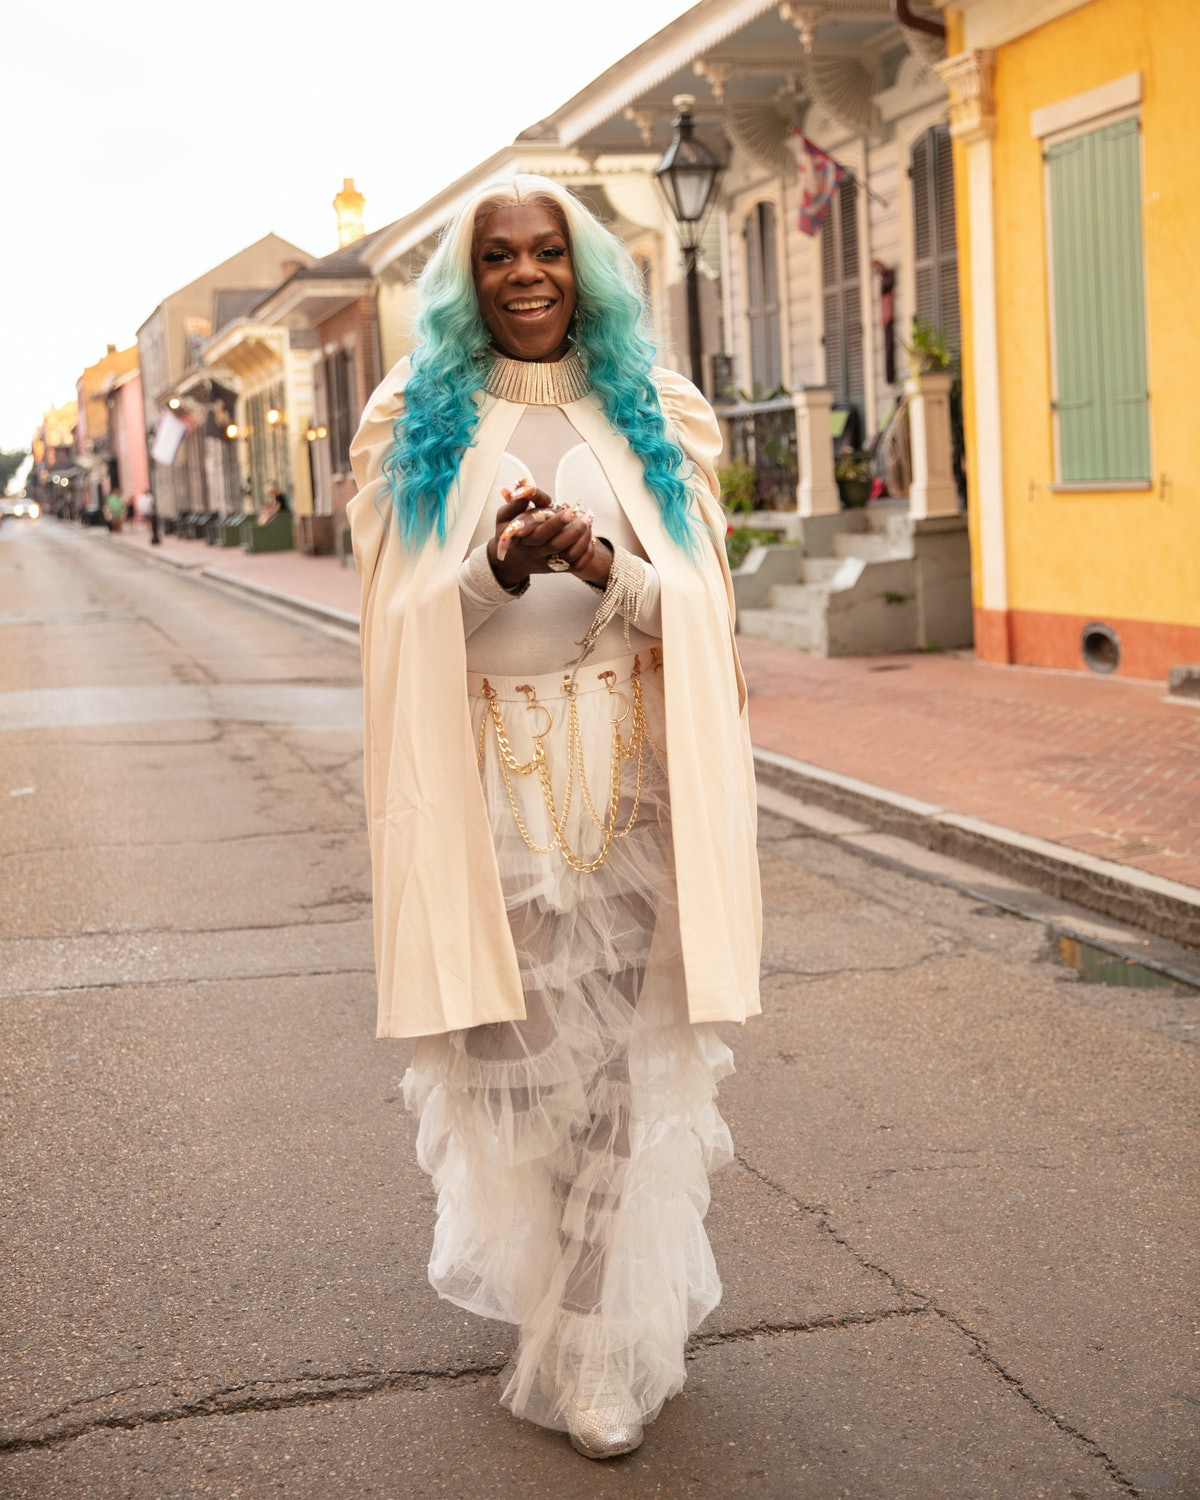 The Musician Big Freedia dressed in white and standing on the street in New Orleans